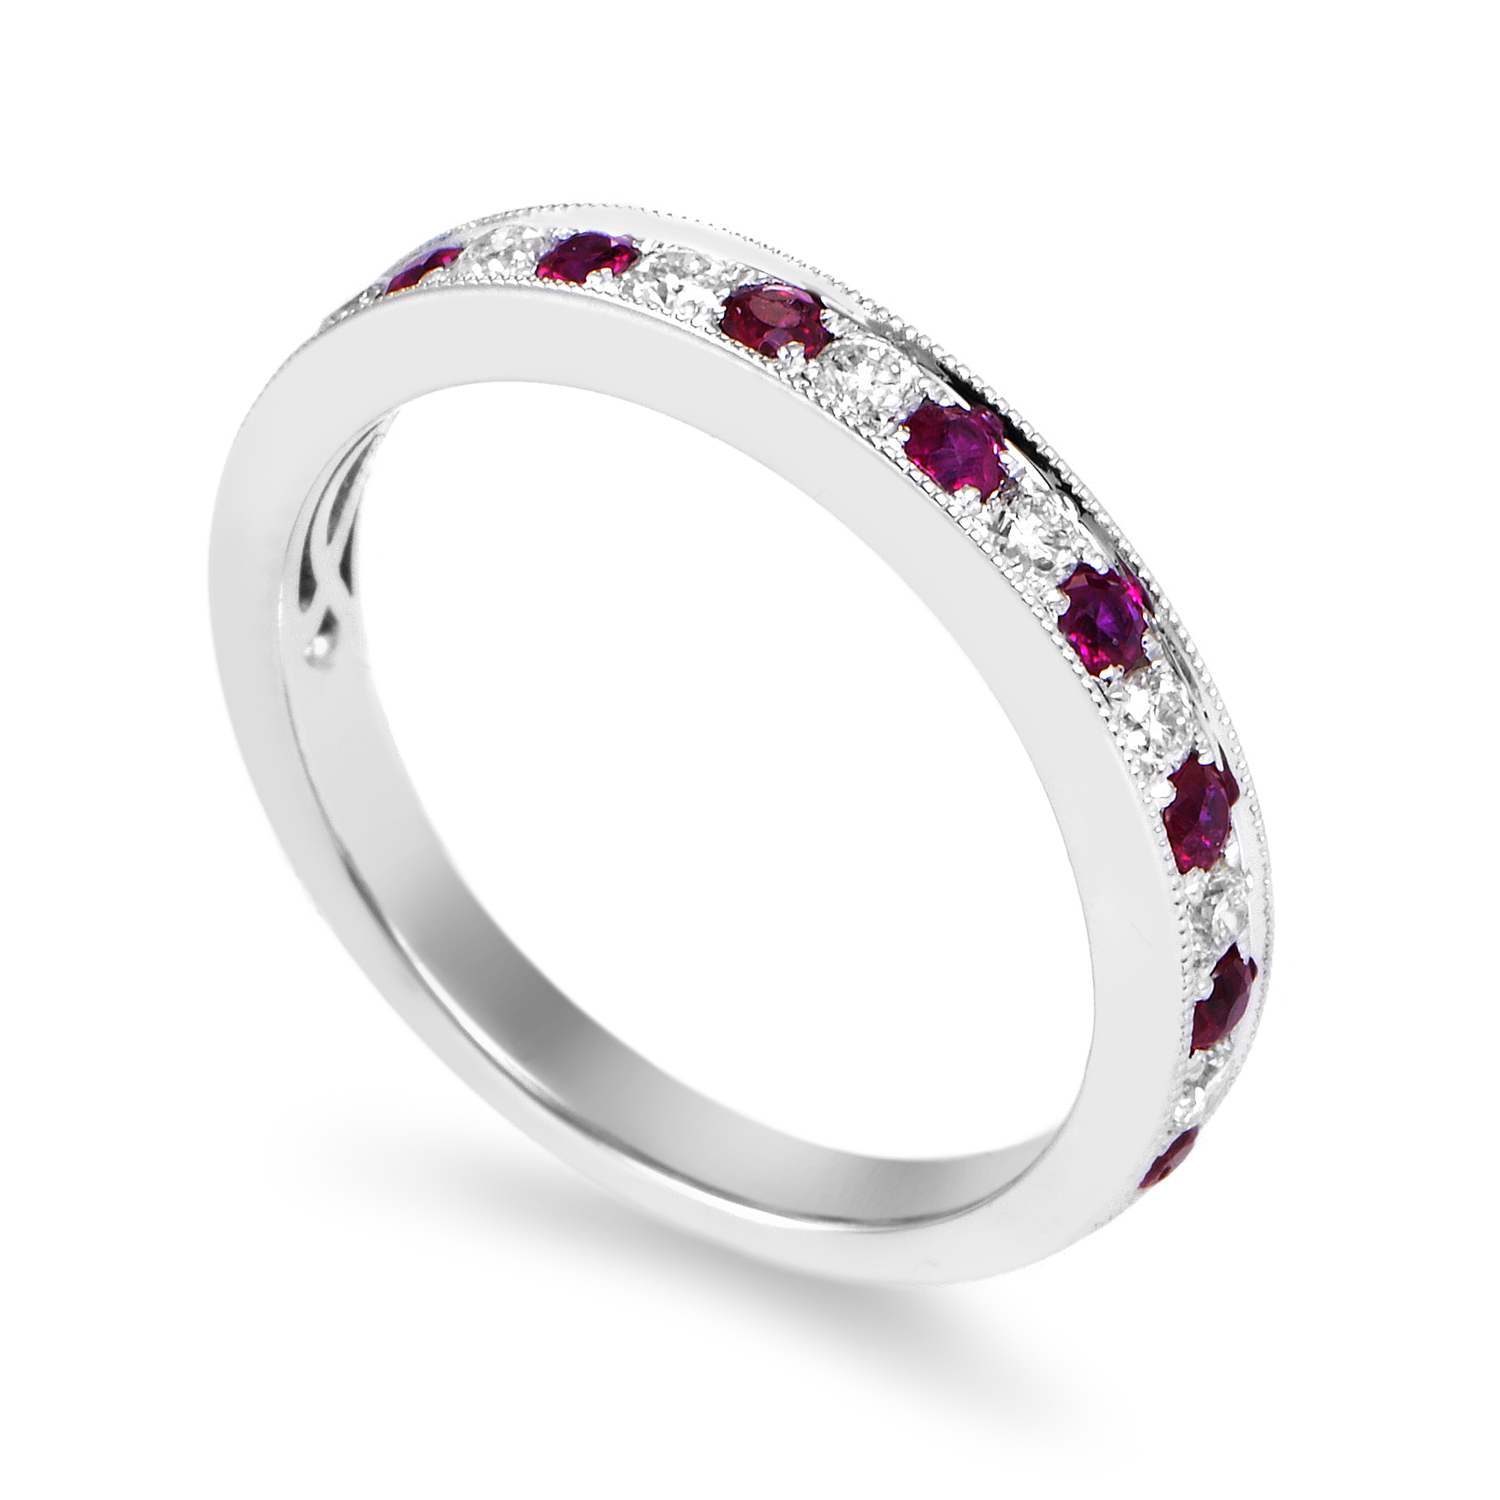 Women's 18K White Gold Diamond & Ruby Band Ring KOUR9BRBZRU